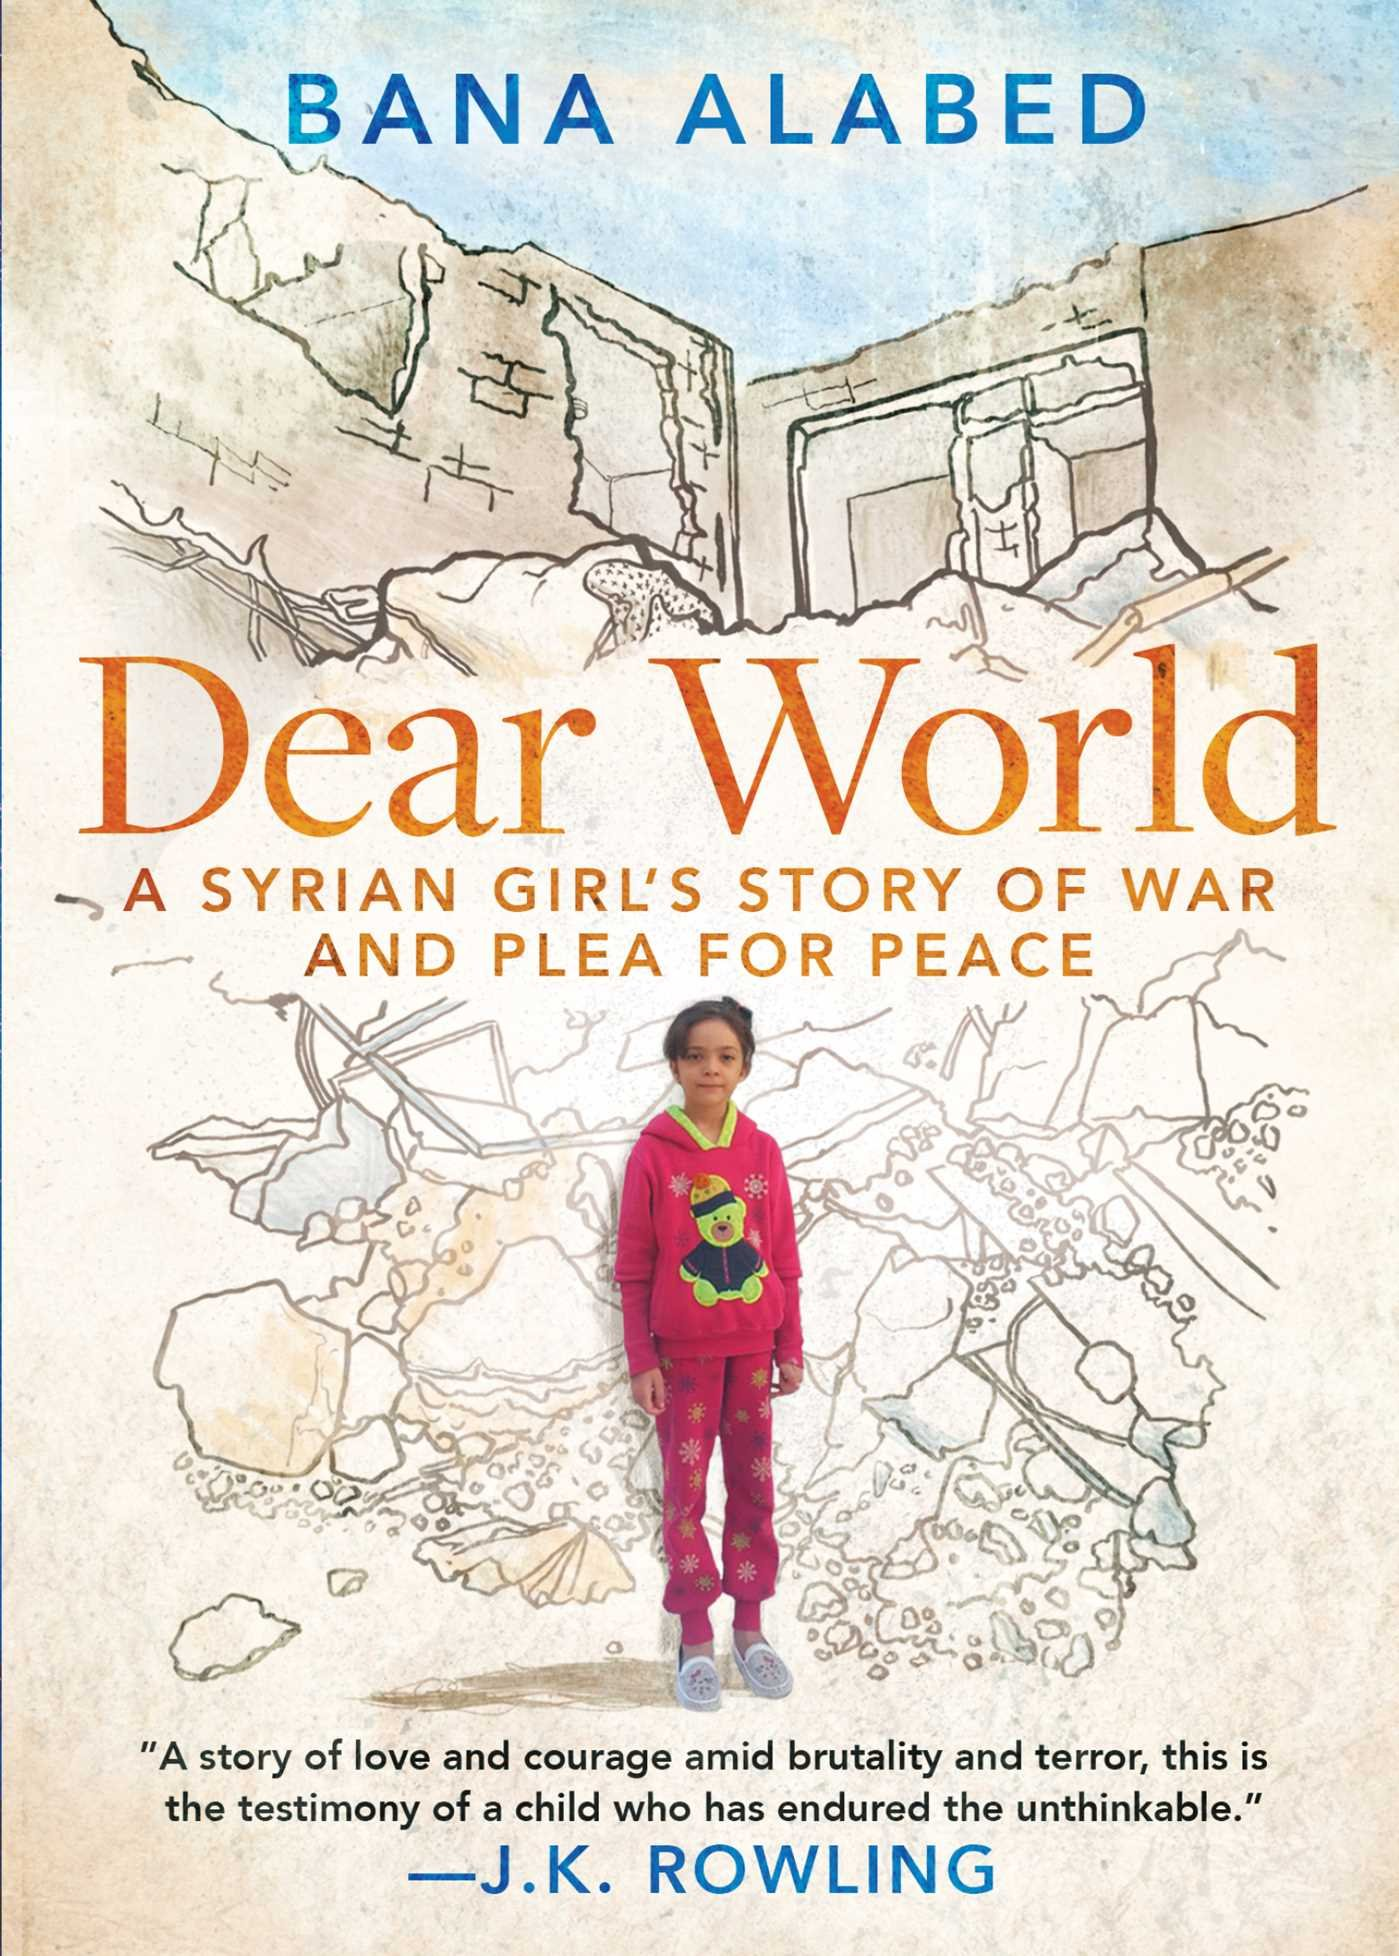 Dear World: A Syrian Girl's Story of War and Plea for Peace by Bana Alabed